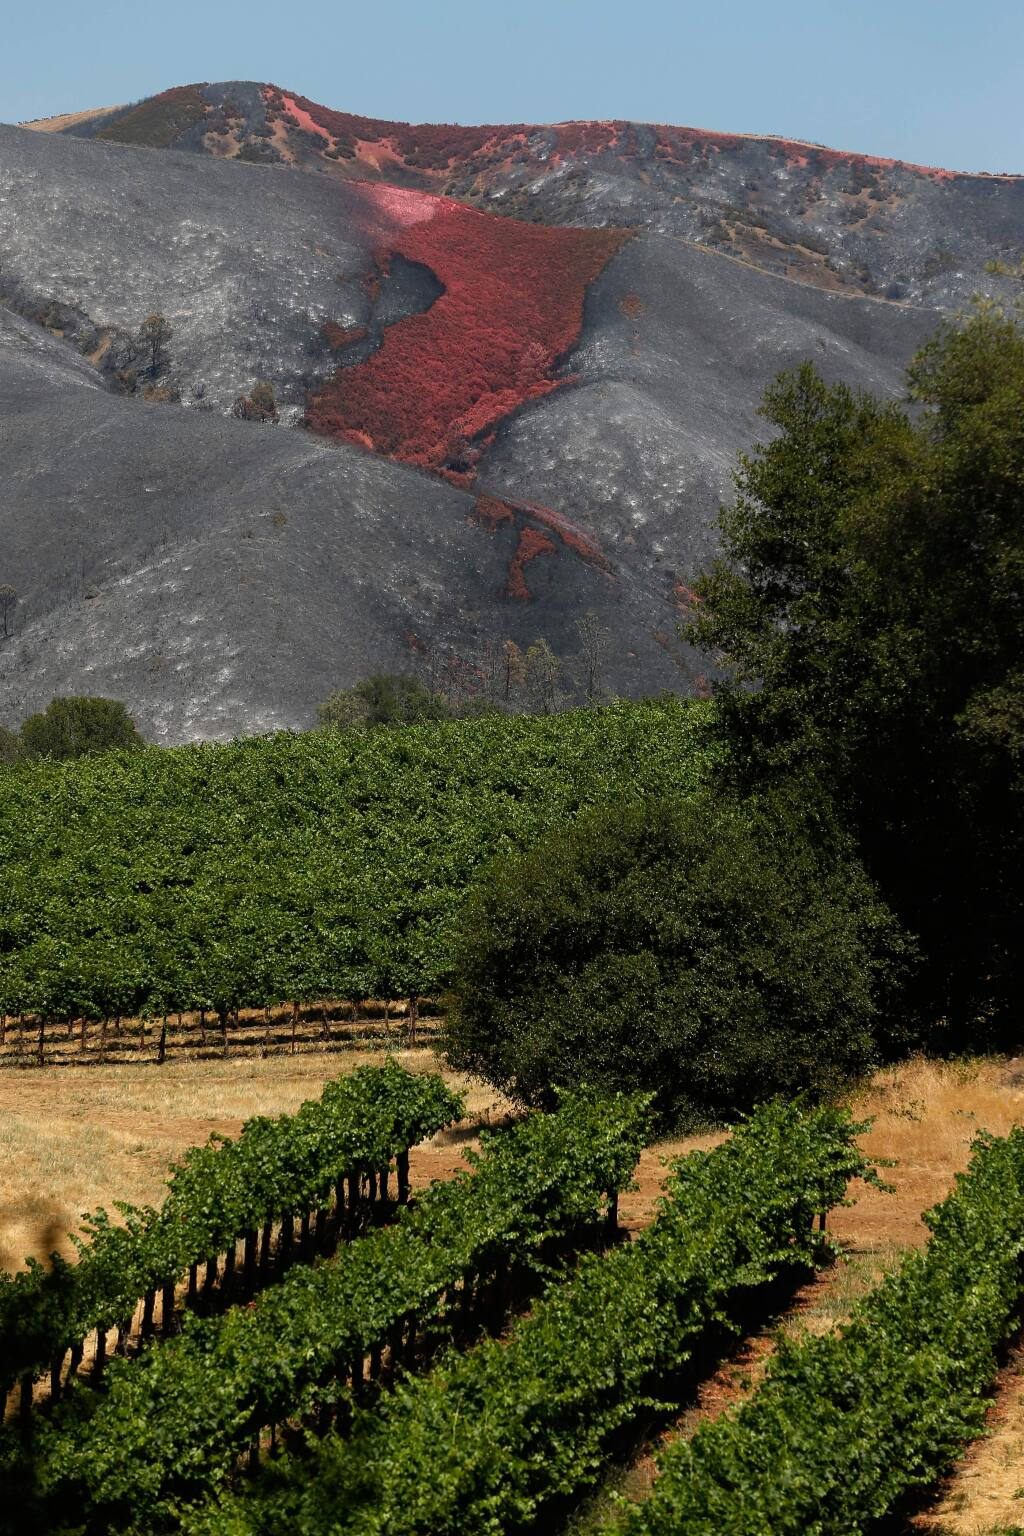 A red layer of Phos-Chek fire retardant is seen covering part of a burned hillside near Clearlake Oaks, California, on Wednesday, June 27, 2018. (Alvin Jornada / The Press Democrat)